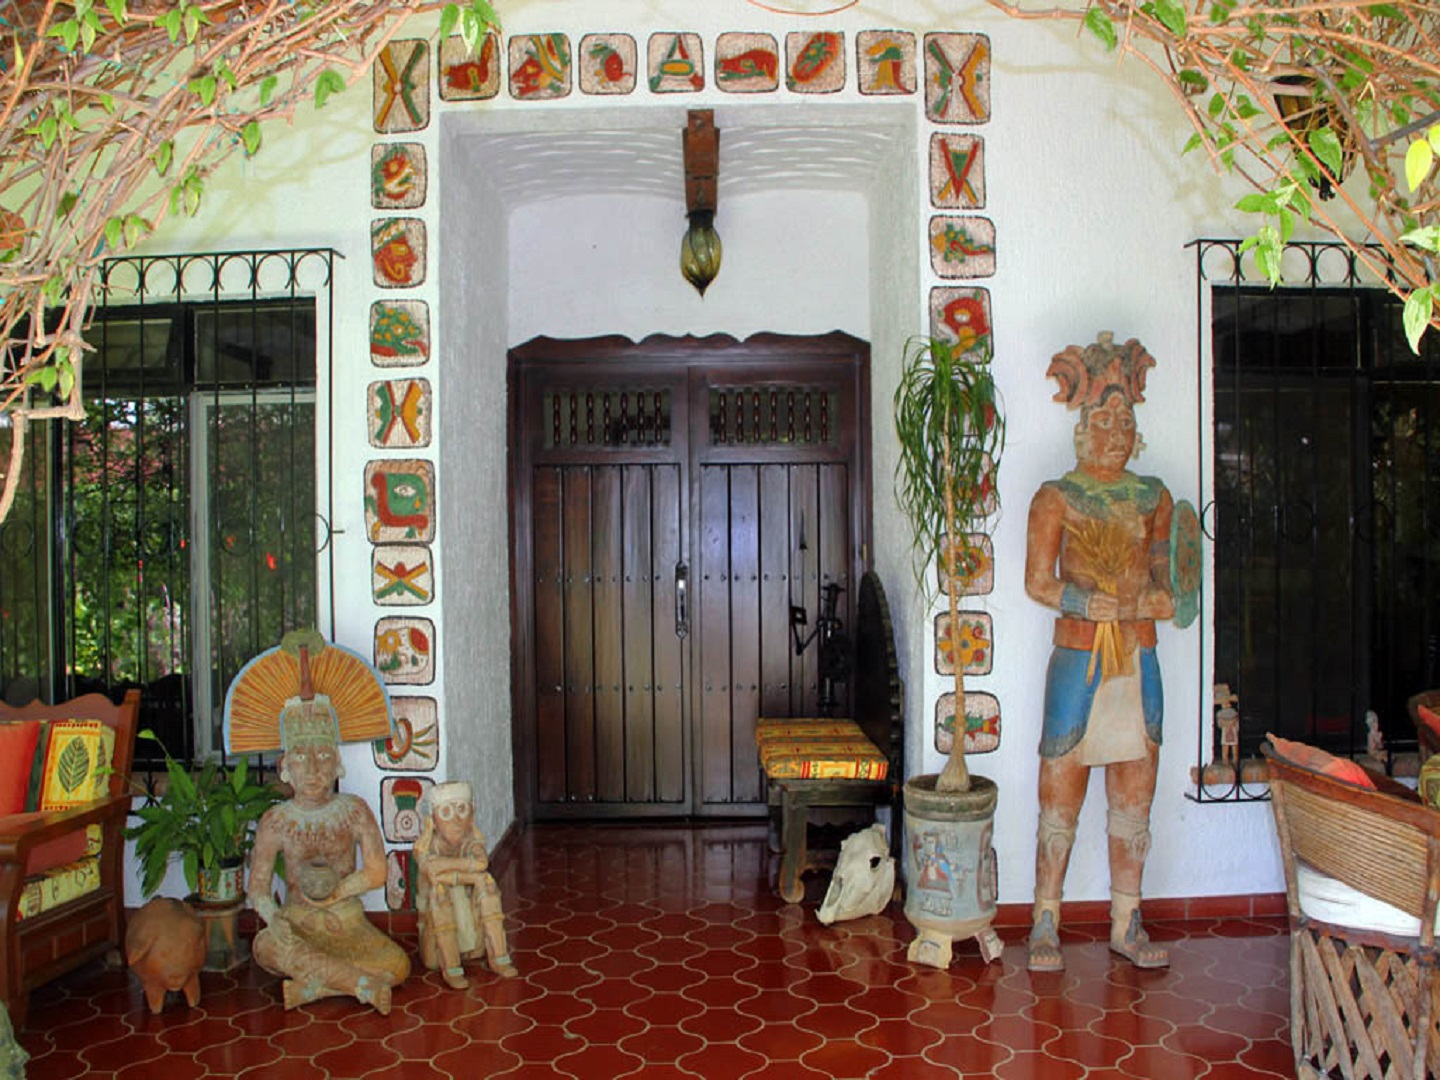 A person standing next to a fireplace at Los Artistas B & B.